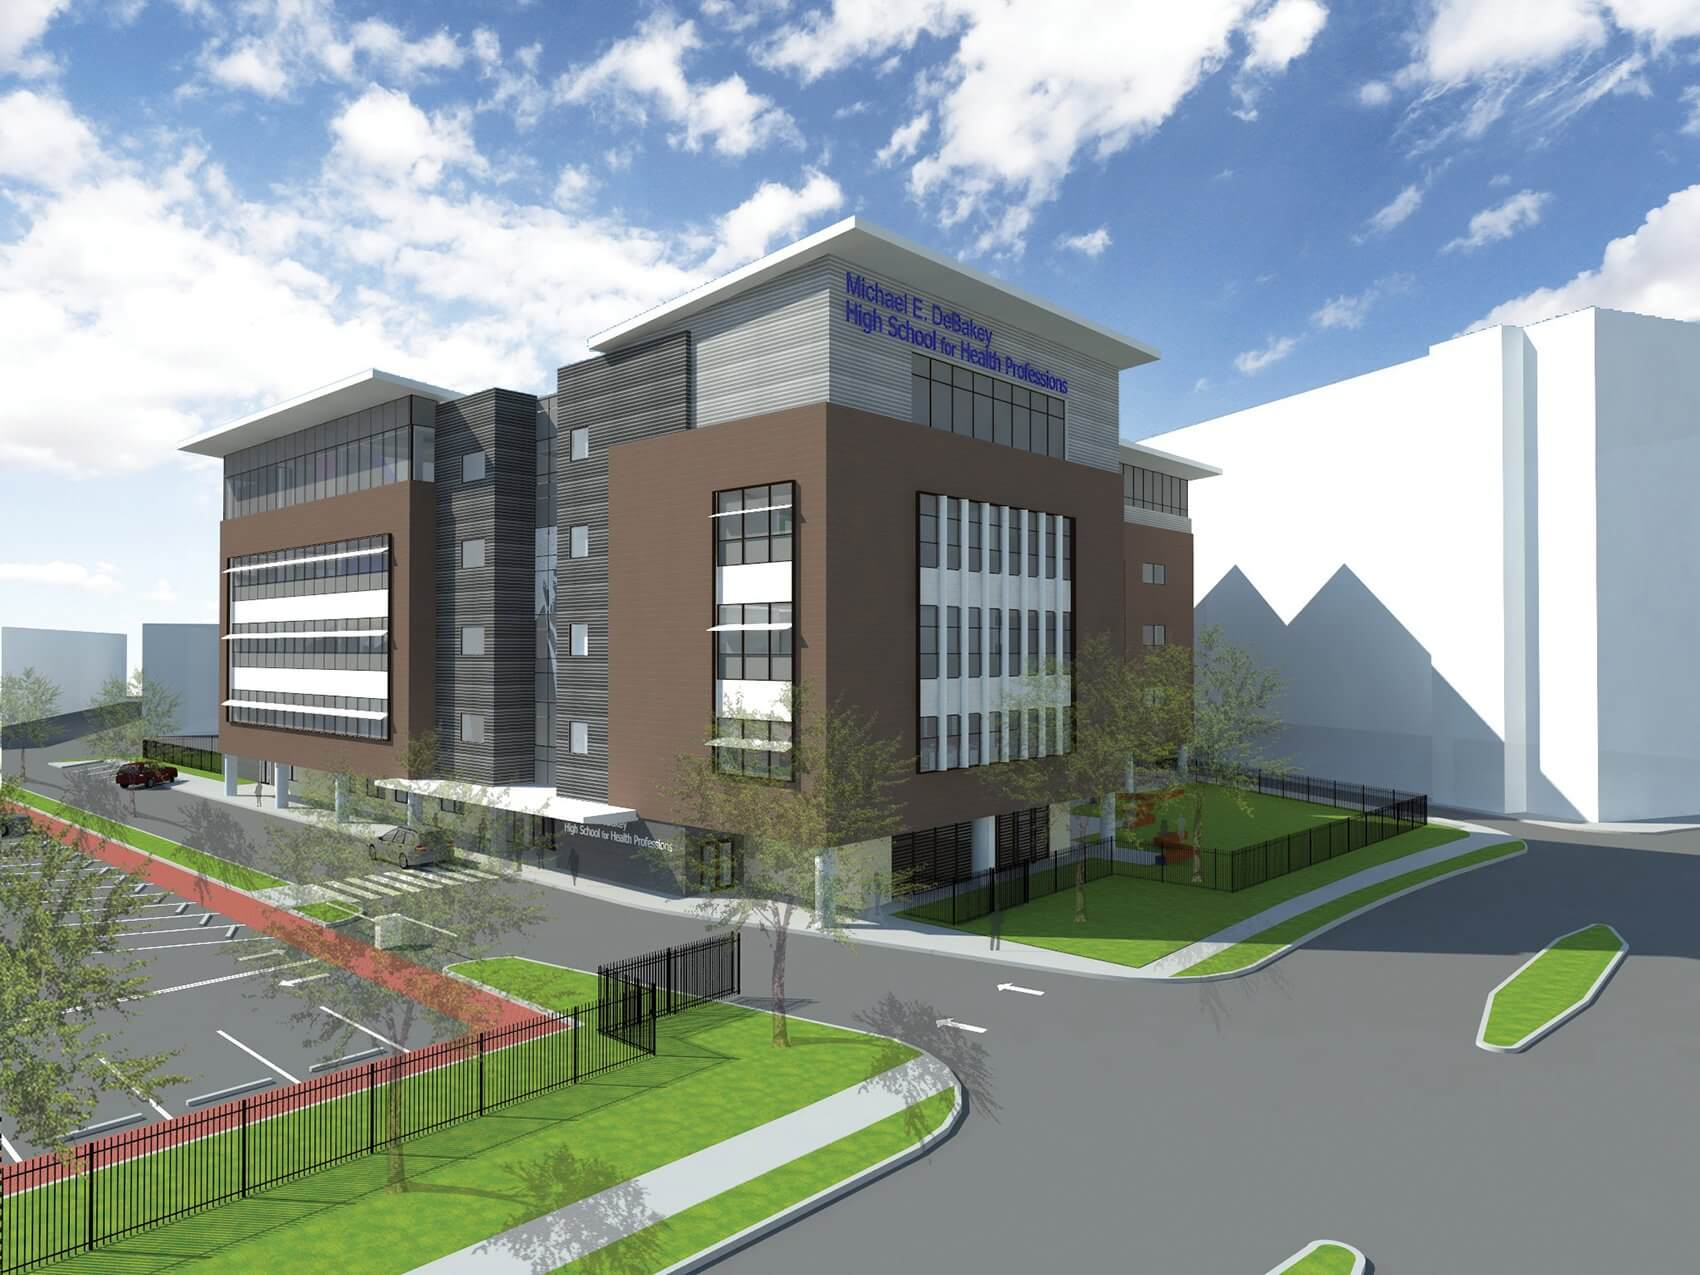 The design for the new five-story DeBakey High School building, to be completed in 2016 (Credit: WHR Architects)